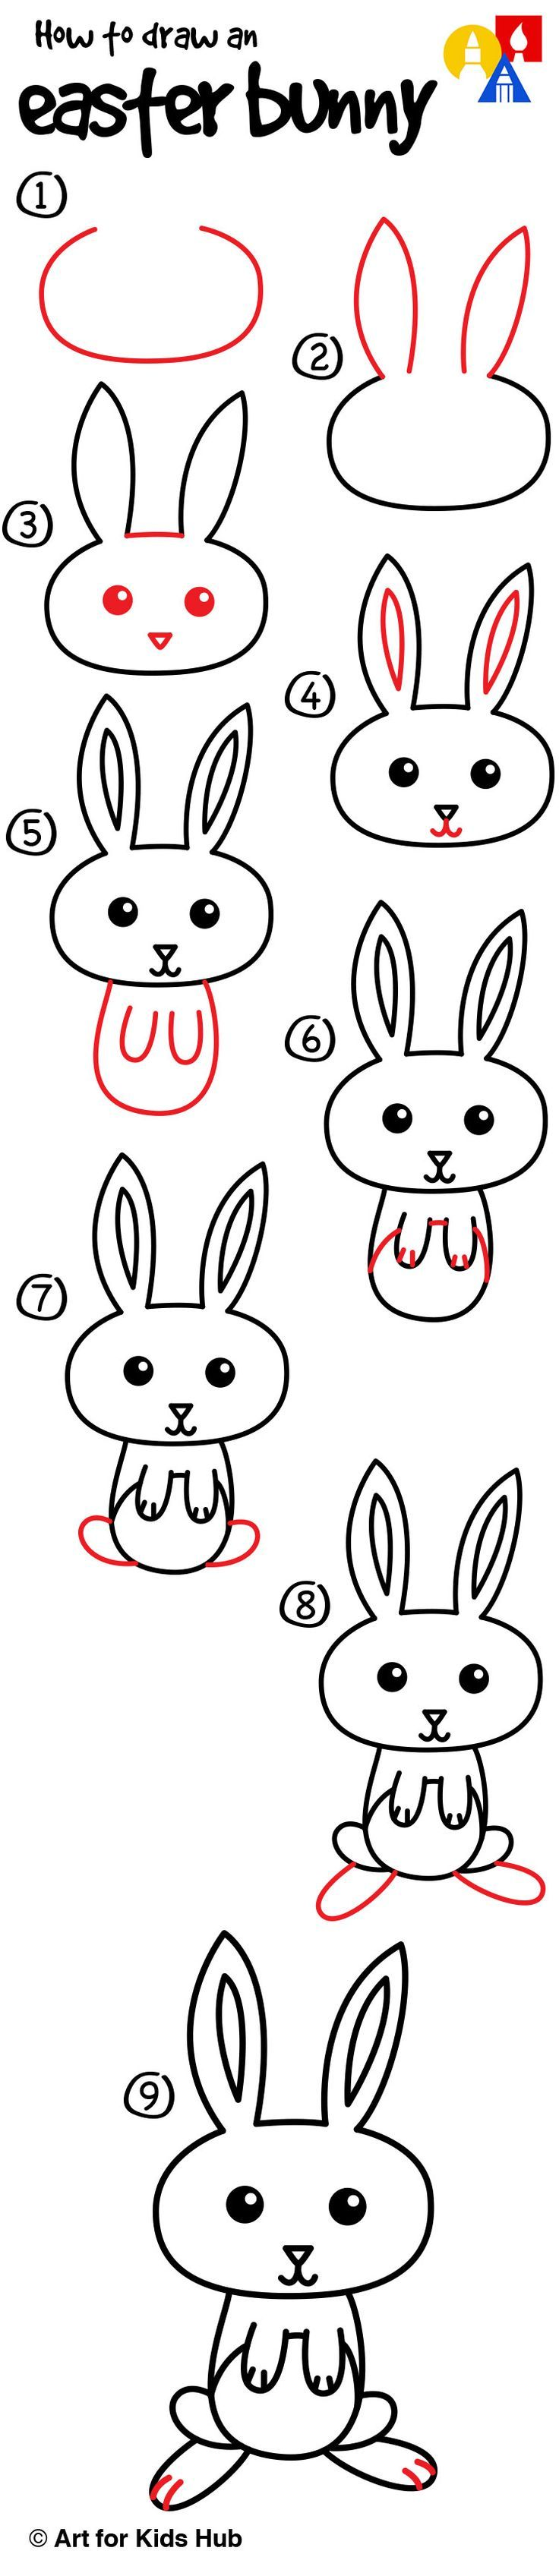 How To Draw A Cartoon Easter Bunny Art For Kids Hub Zeichnen